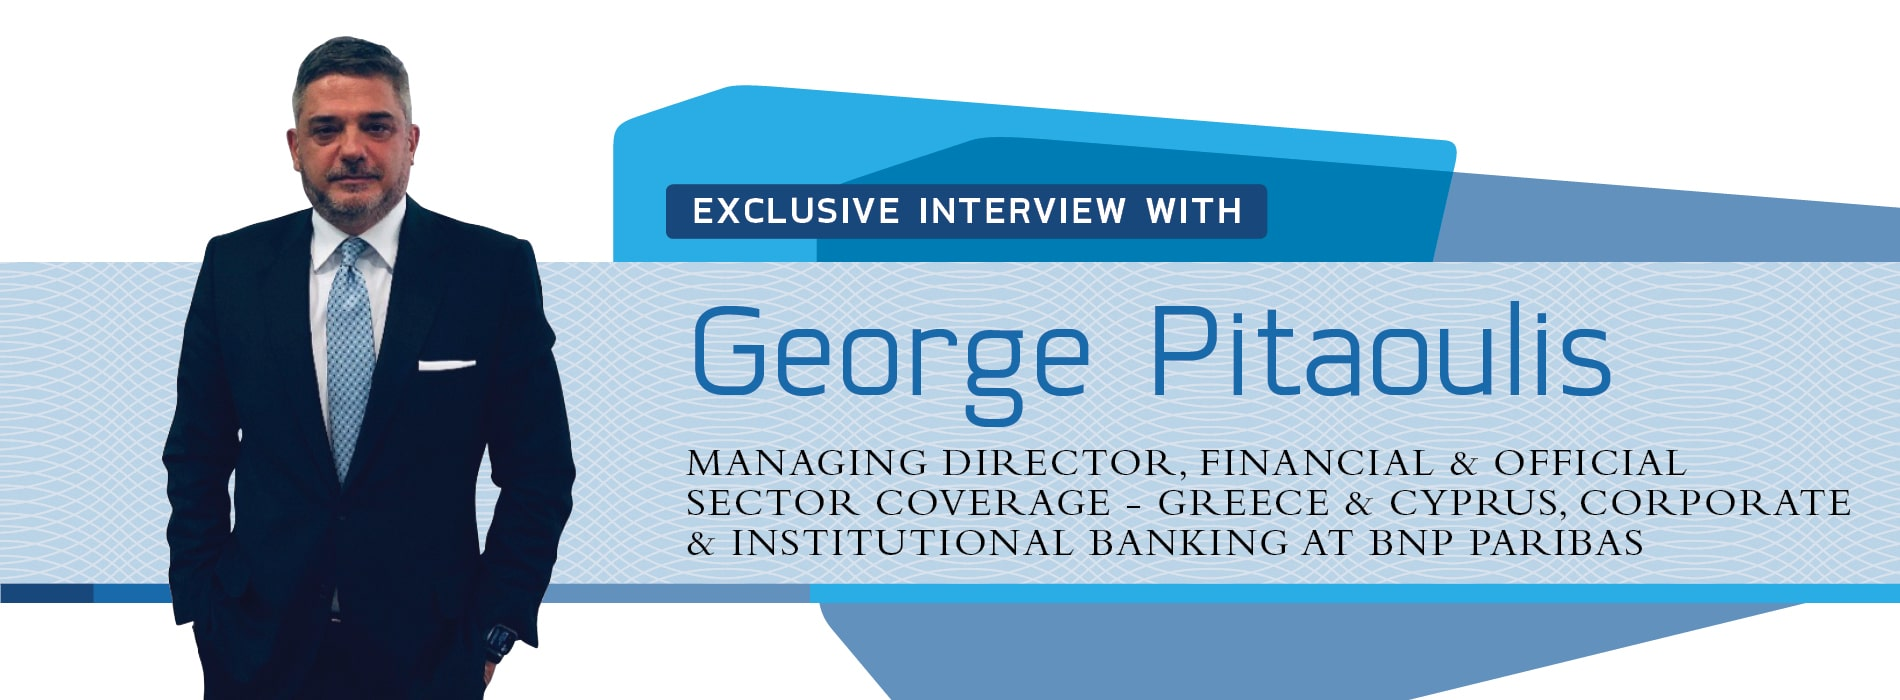 Interview with George Pitaoulis of BNP Paribas on Greece's economy